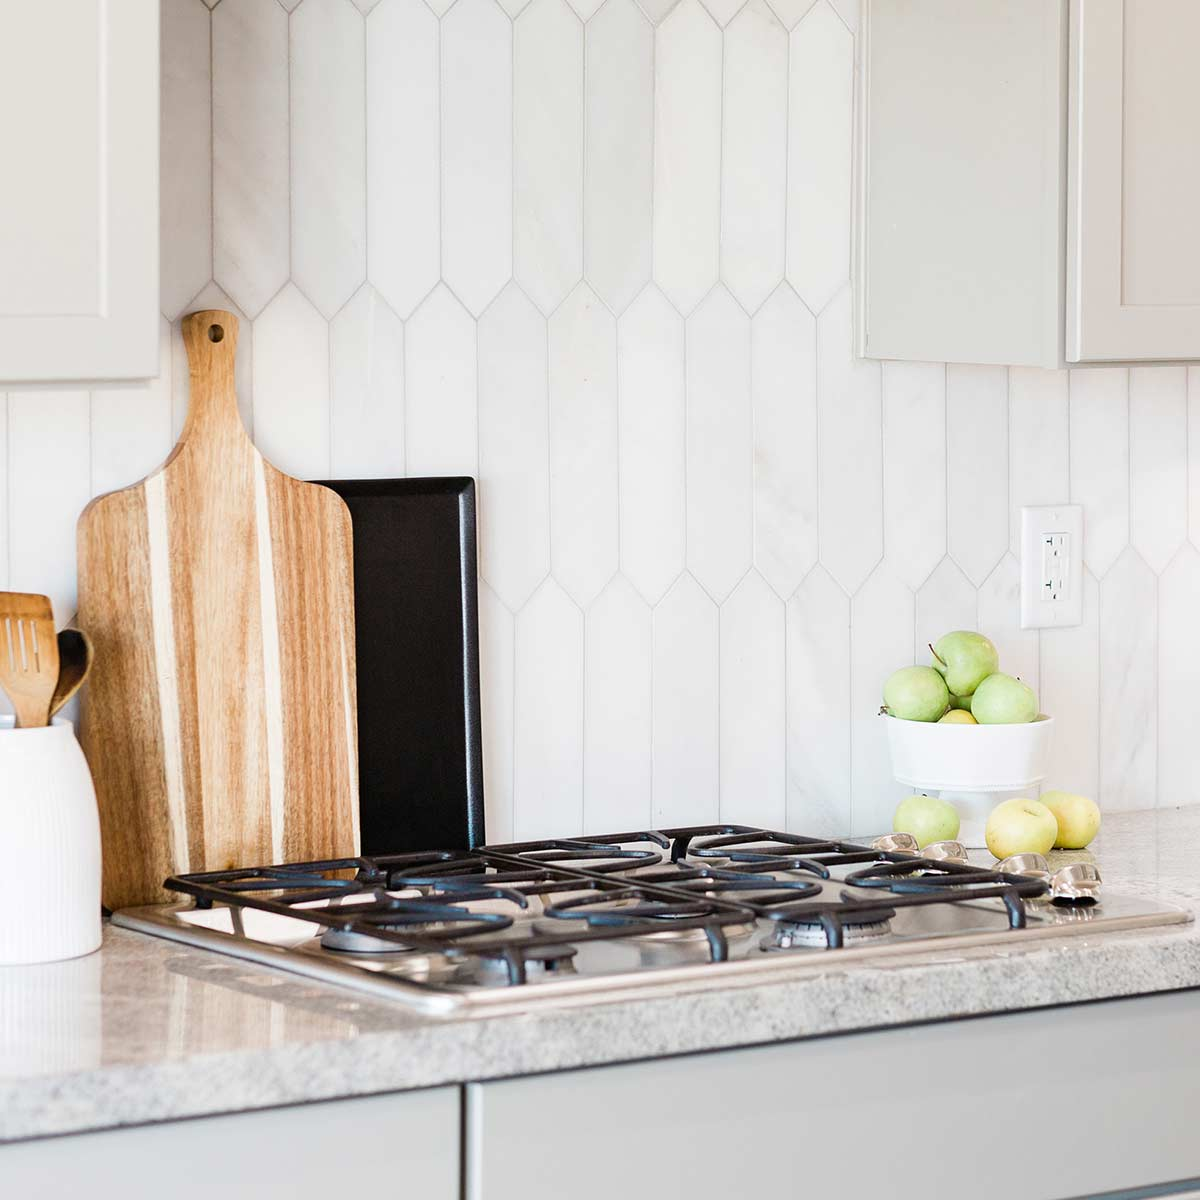 simple and clutter-free kitchen counter with white tile backsplash